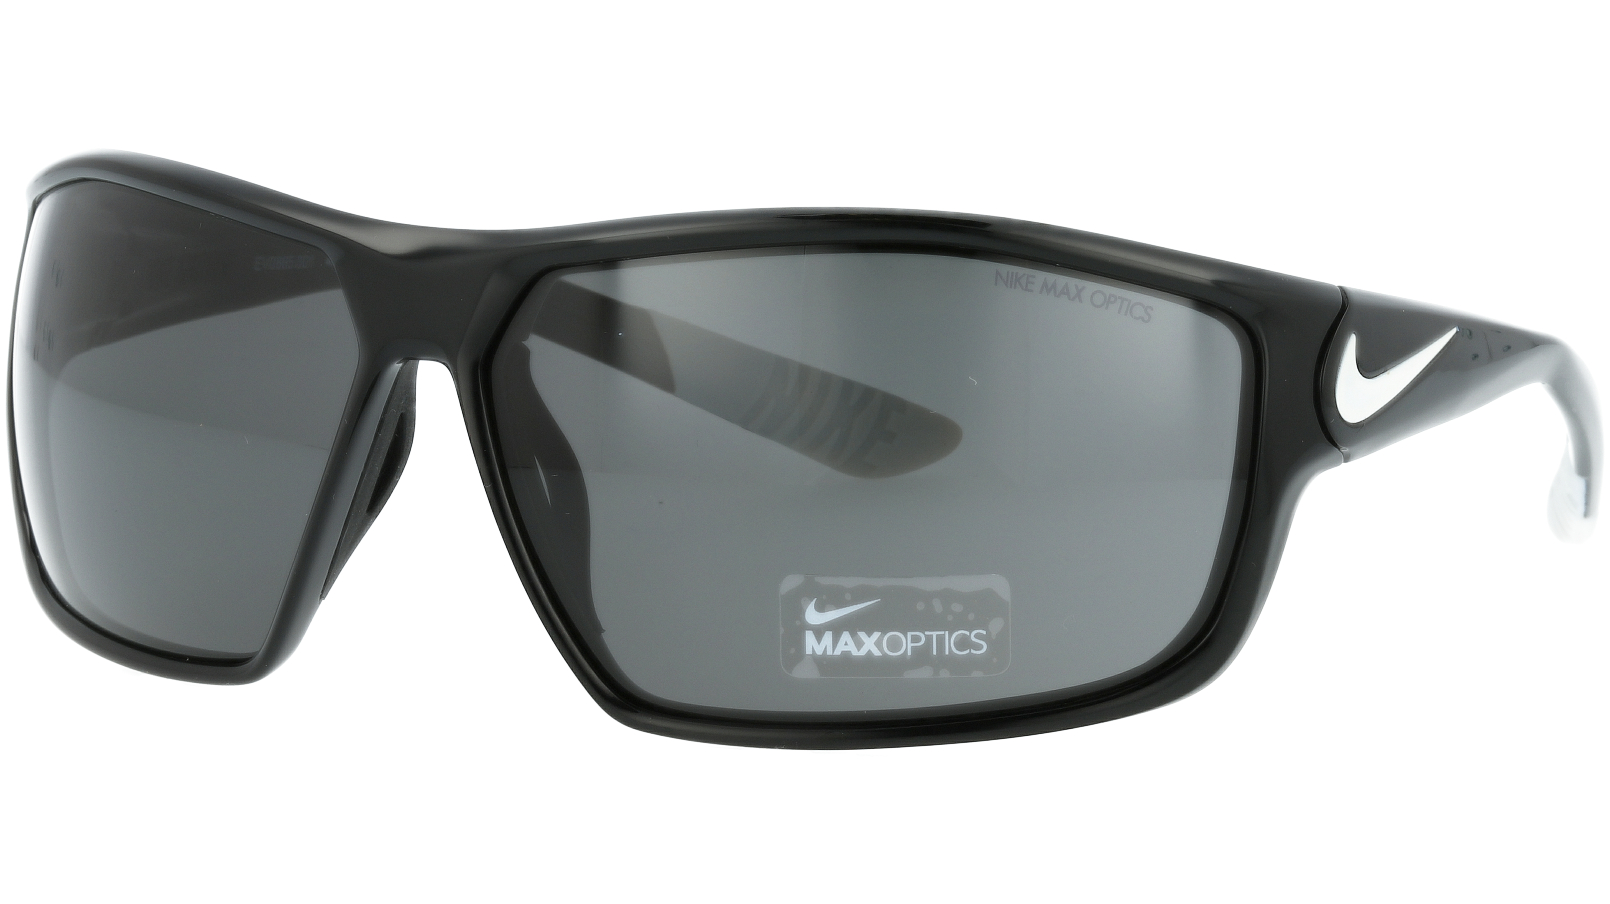 NIKE EV0865 001 70 BLACK Sunglasses